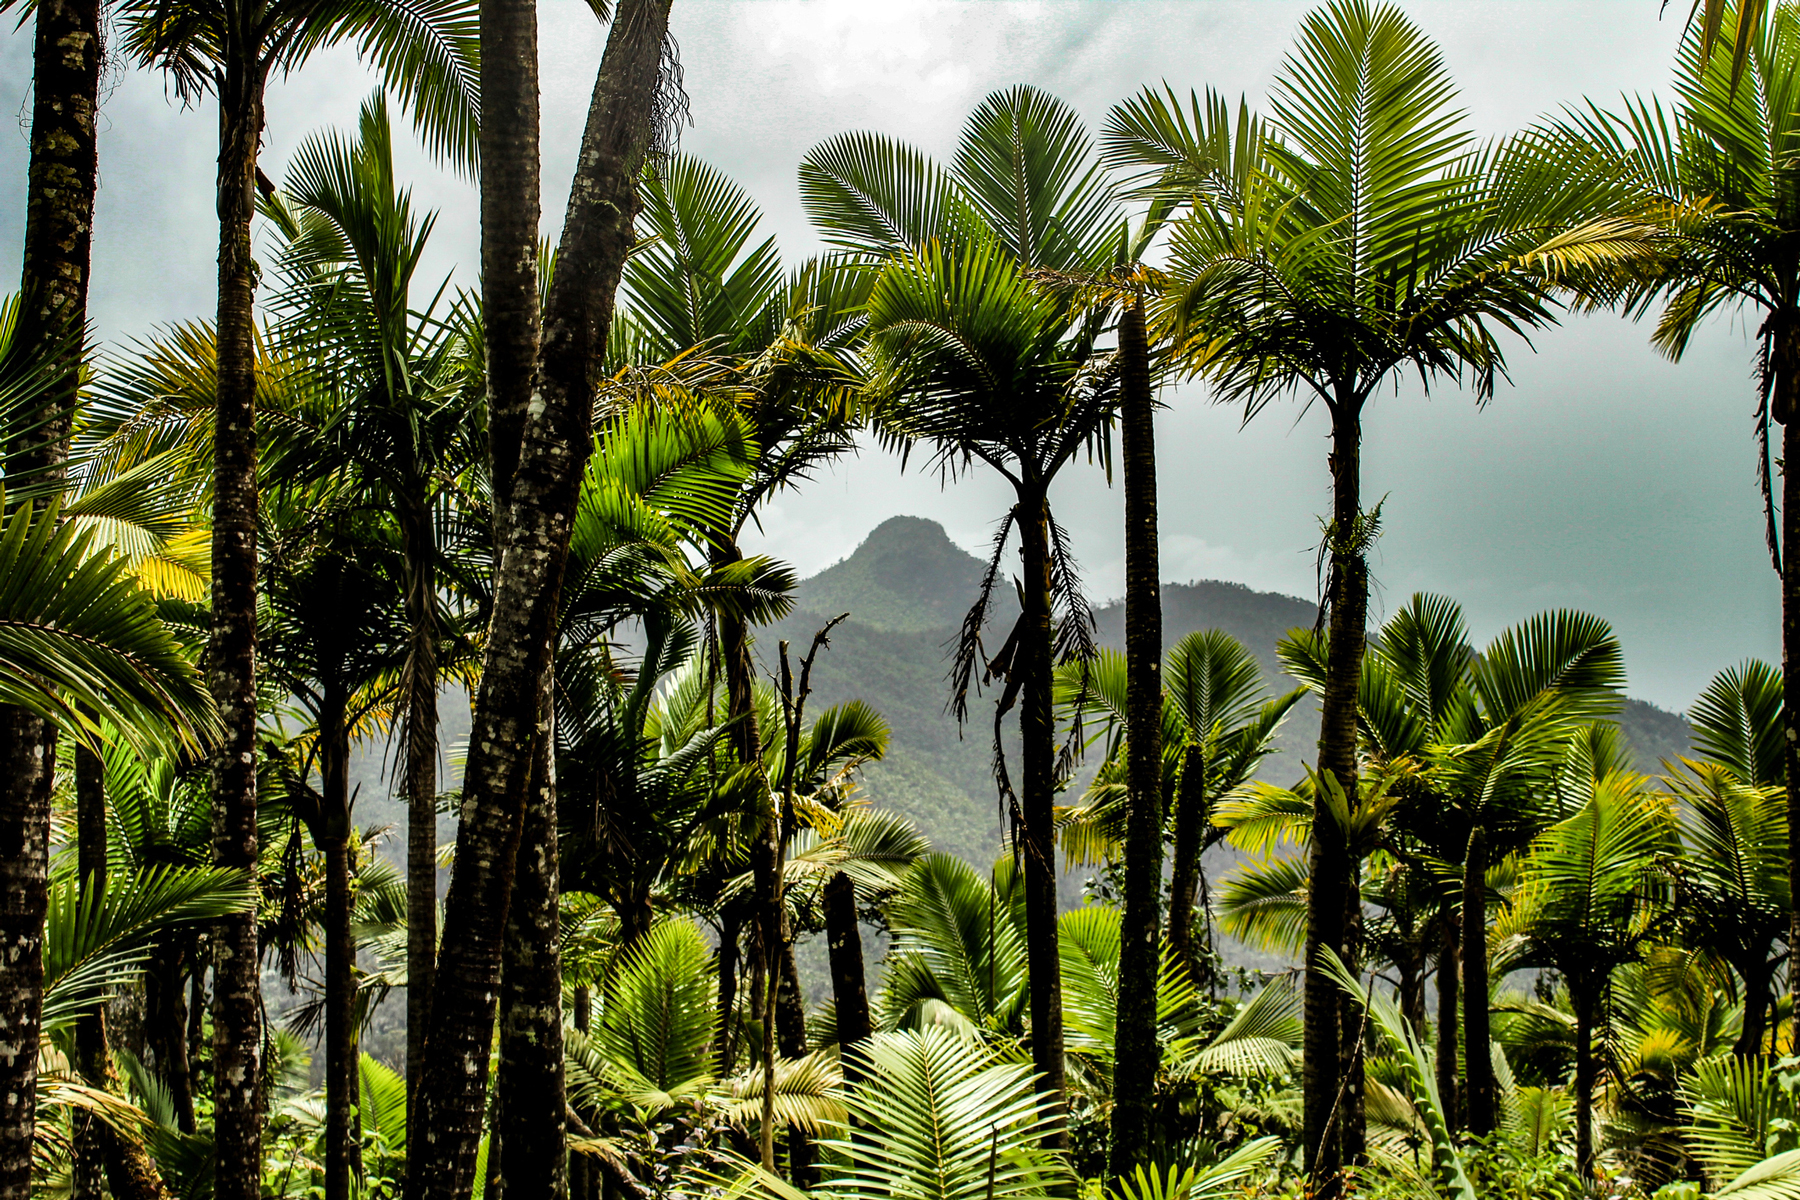 Views of El Yunque National Forest in Puerto Rico